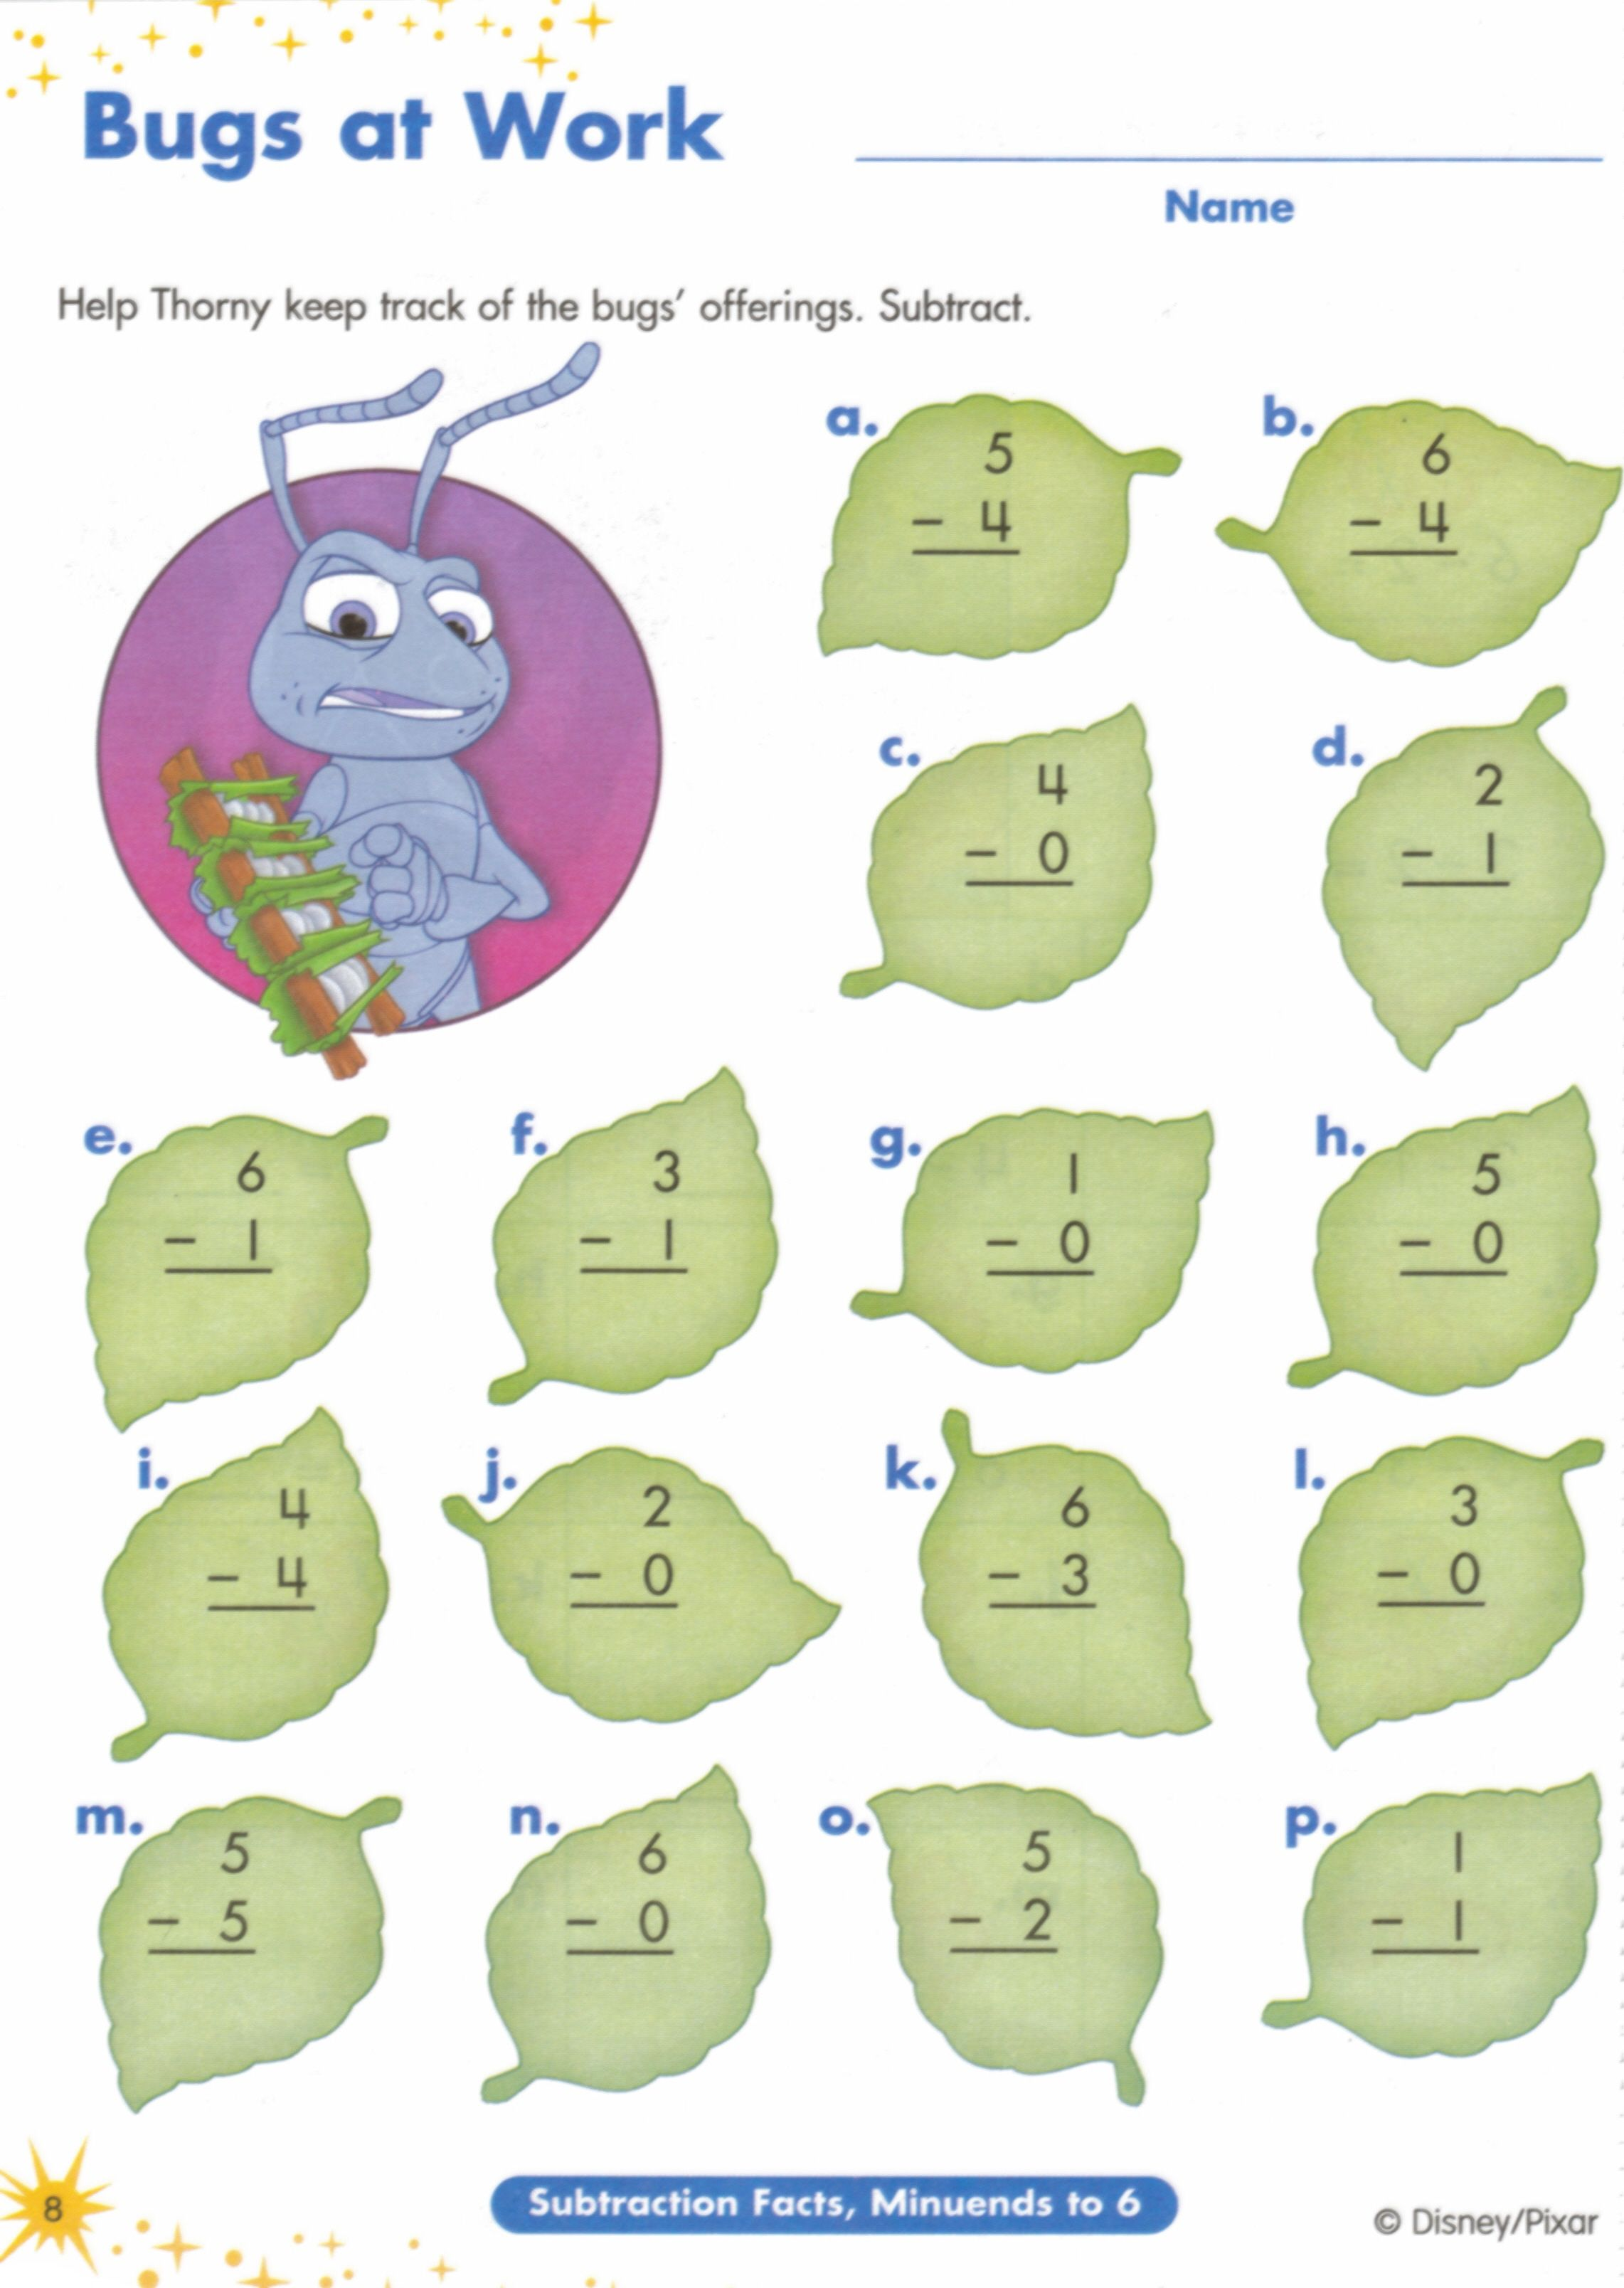 Aldiablosus  Marvelous  Images About Worksheets On Pinterest  Disney Fun Facts For  With Engaging  Images About Worksheets On Pinterest  Disney Fun Facts For Kids And First Grade Math With Beautiful Math Coordinates Worksheets Also Super Teacher Worksheets English Comprehension In Addition Esl Count And Noncount Nouns Worksheets And Infectious Diseases Worksheets As Well As Maths Temperature Worksheets Additionally Water Safety Worksheet From Pinterestcom With Aldiablosus  Engaging  Images About Worksheets On Pinterest  Disney Fun Facts For  With Beautiful  Images About Worksheets On Pinterest  Disney Fun Facts For Kids And First Grade Math And Marvelous Math Coordinates Worksheets Also Super Teacher Worksheets English Comprehension In Addition Esl Count And Noncount Nouns Worksheets From Pinterestcom